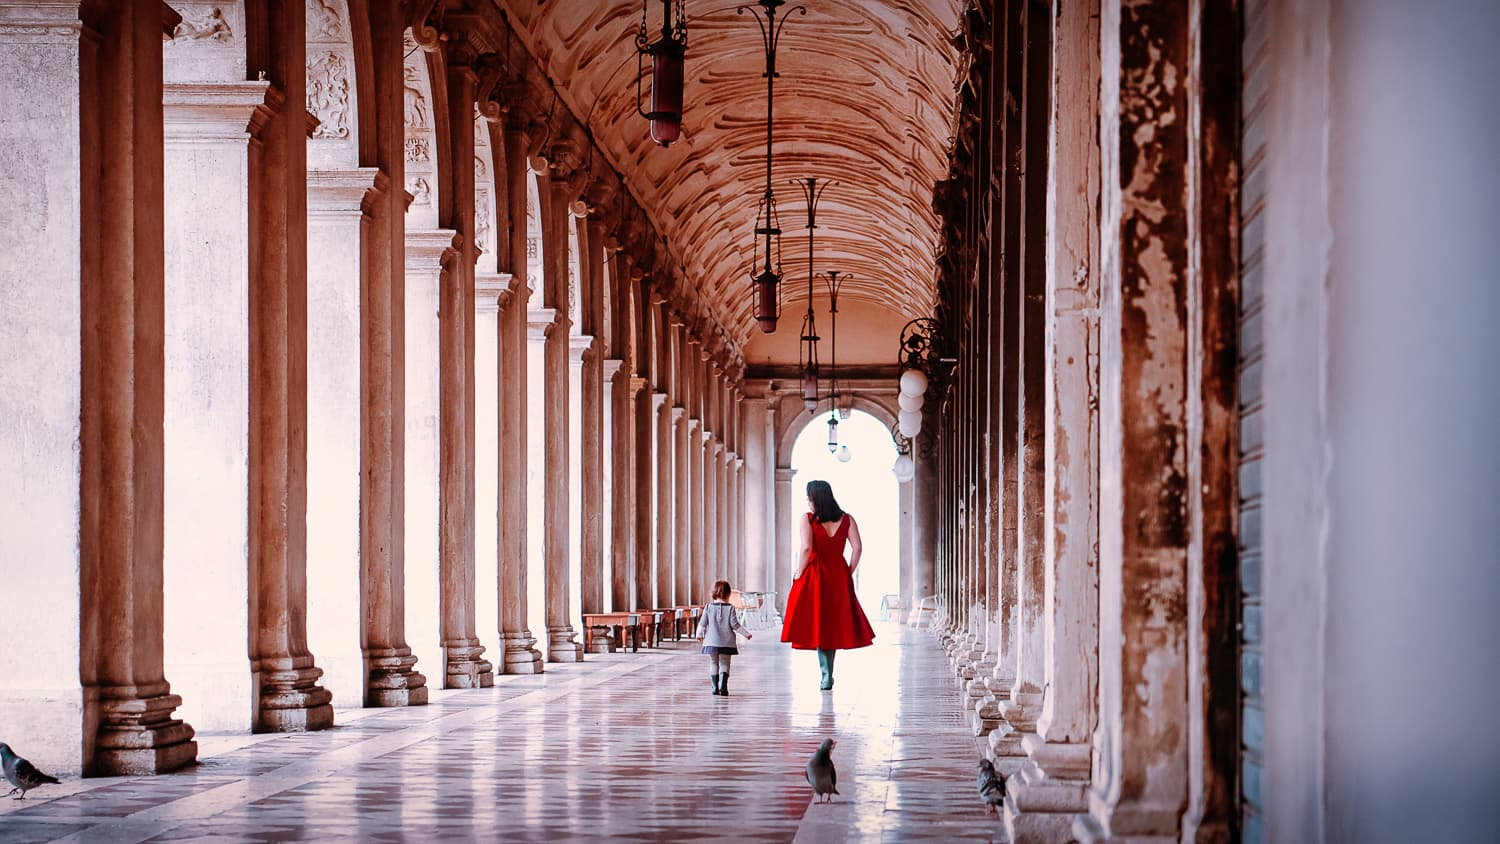 Walking amongst columns near Piazza San Marco.